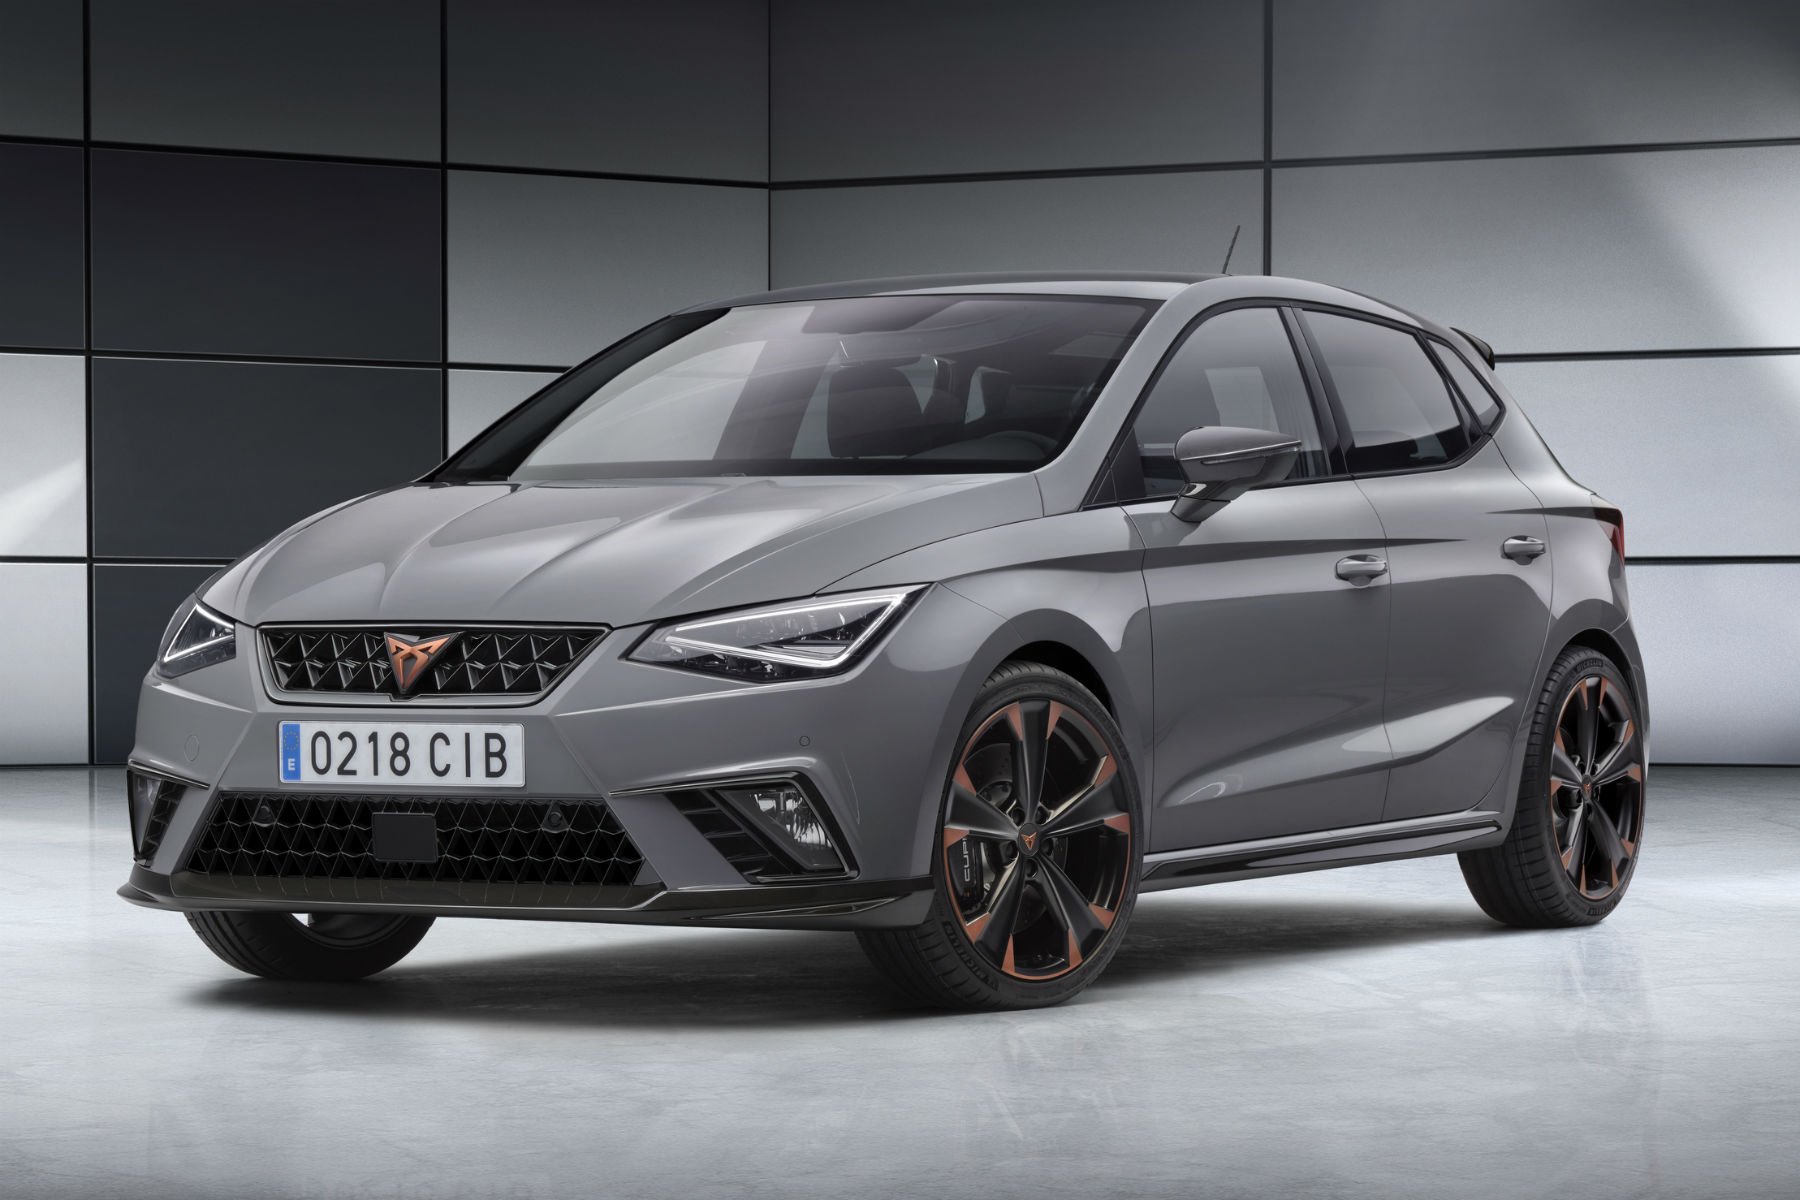 seat s sporty new cupra sub brand 9 things we ve learned. Black Bedroom Furniture Sets. Home Design Ideas